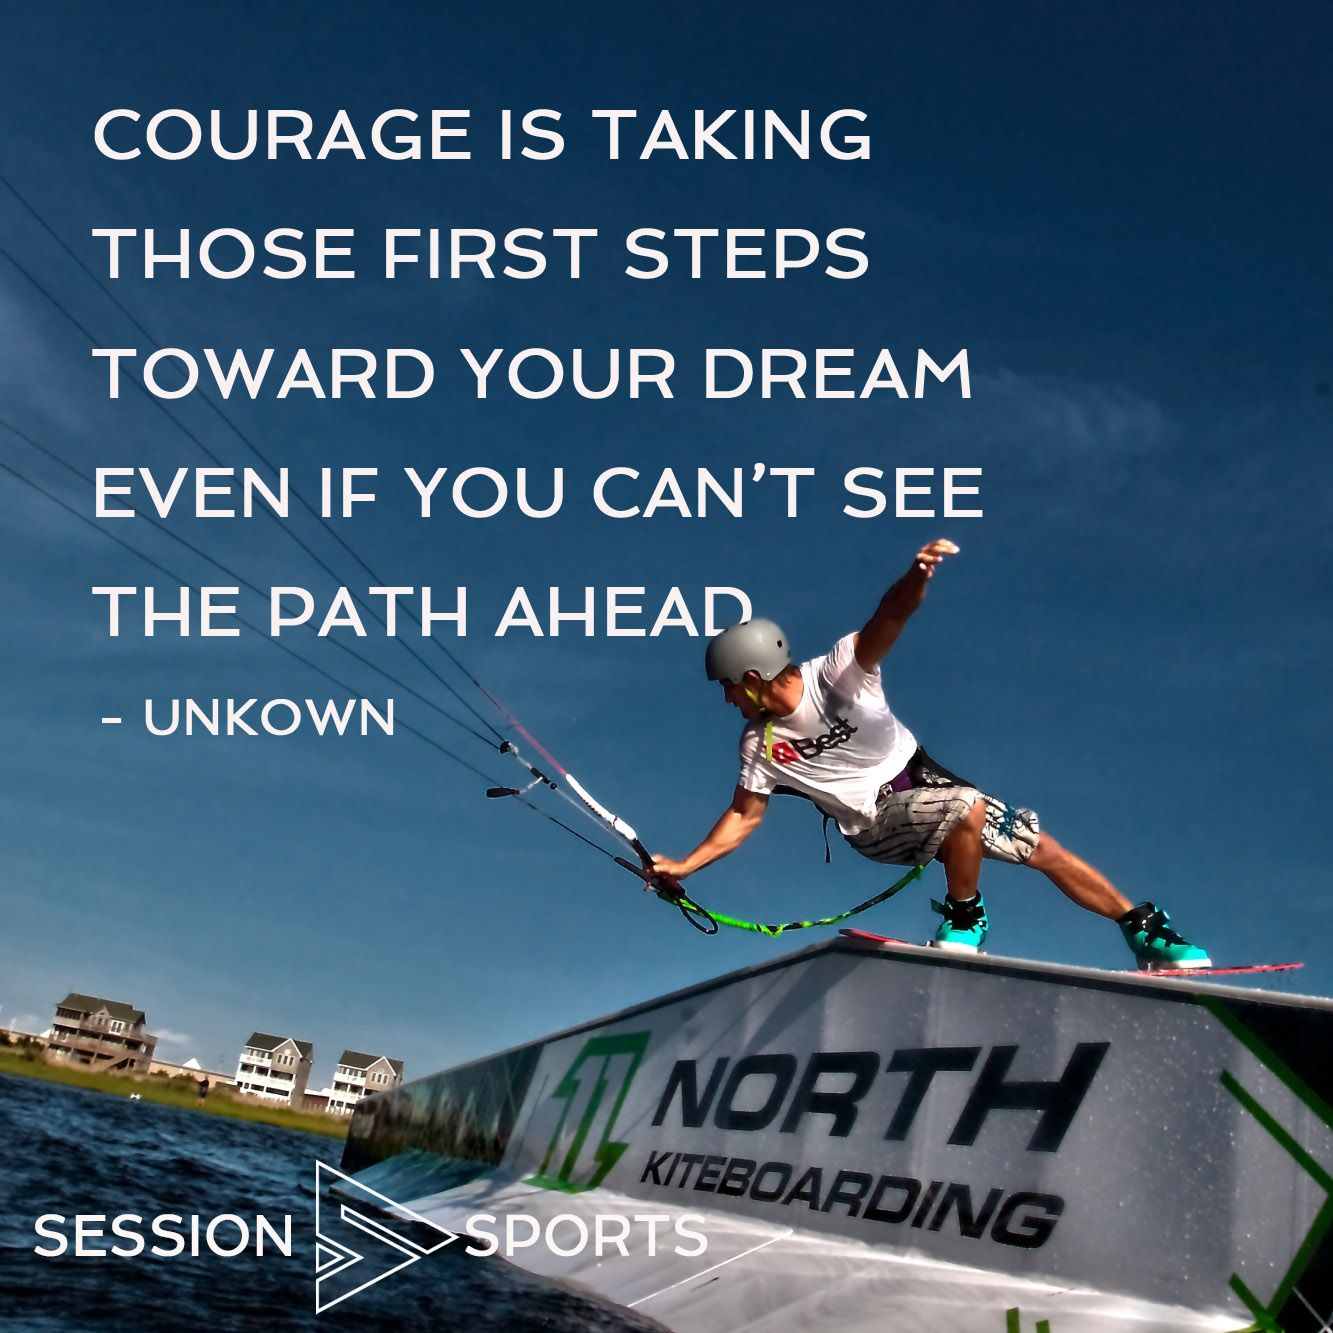 Kiteboarding Inspirational Quote Of The Day. Courage Is Taking Those First  Steps Toward Your Dream Even If You Canu0027t See The Path Ahead.